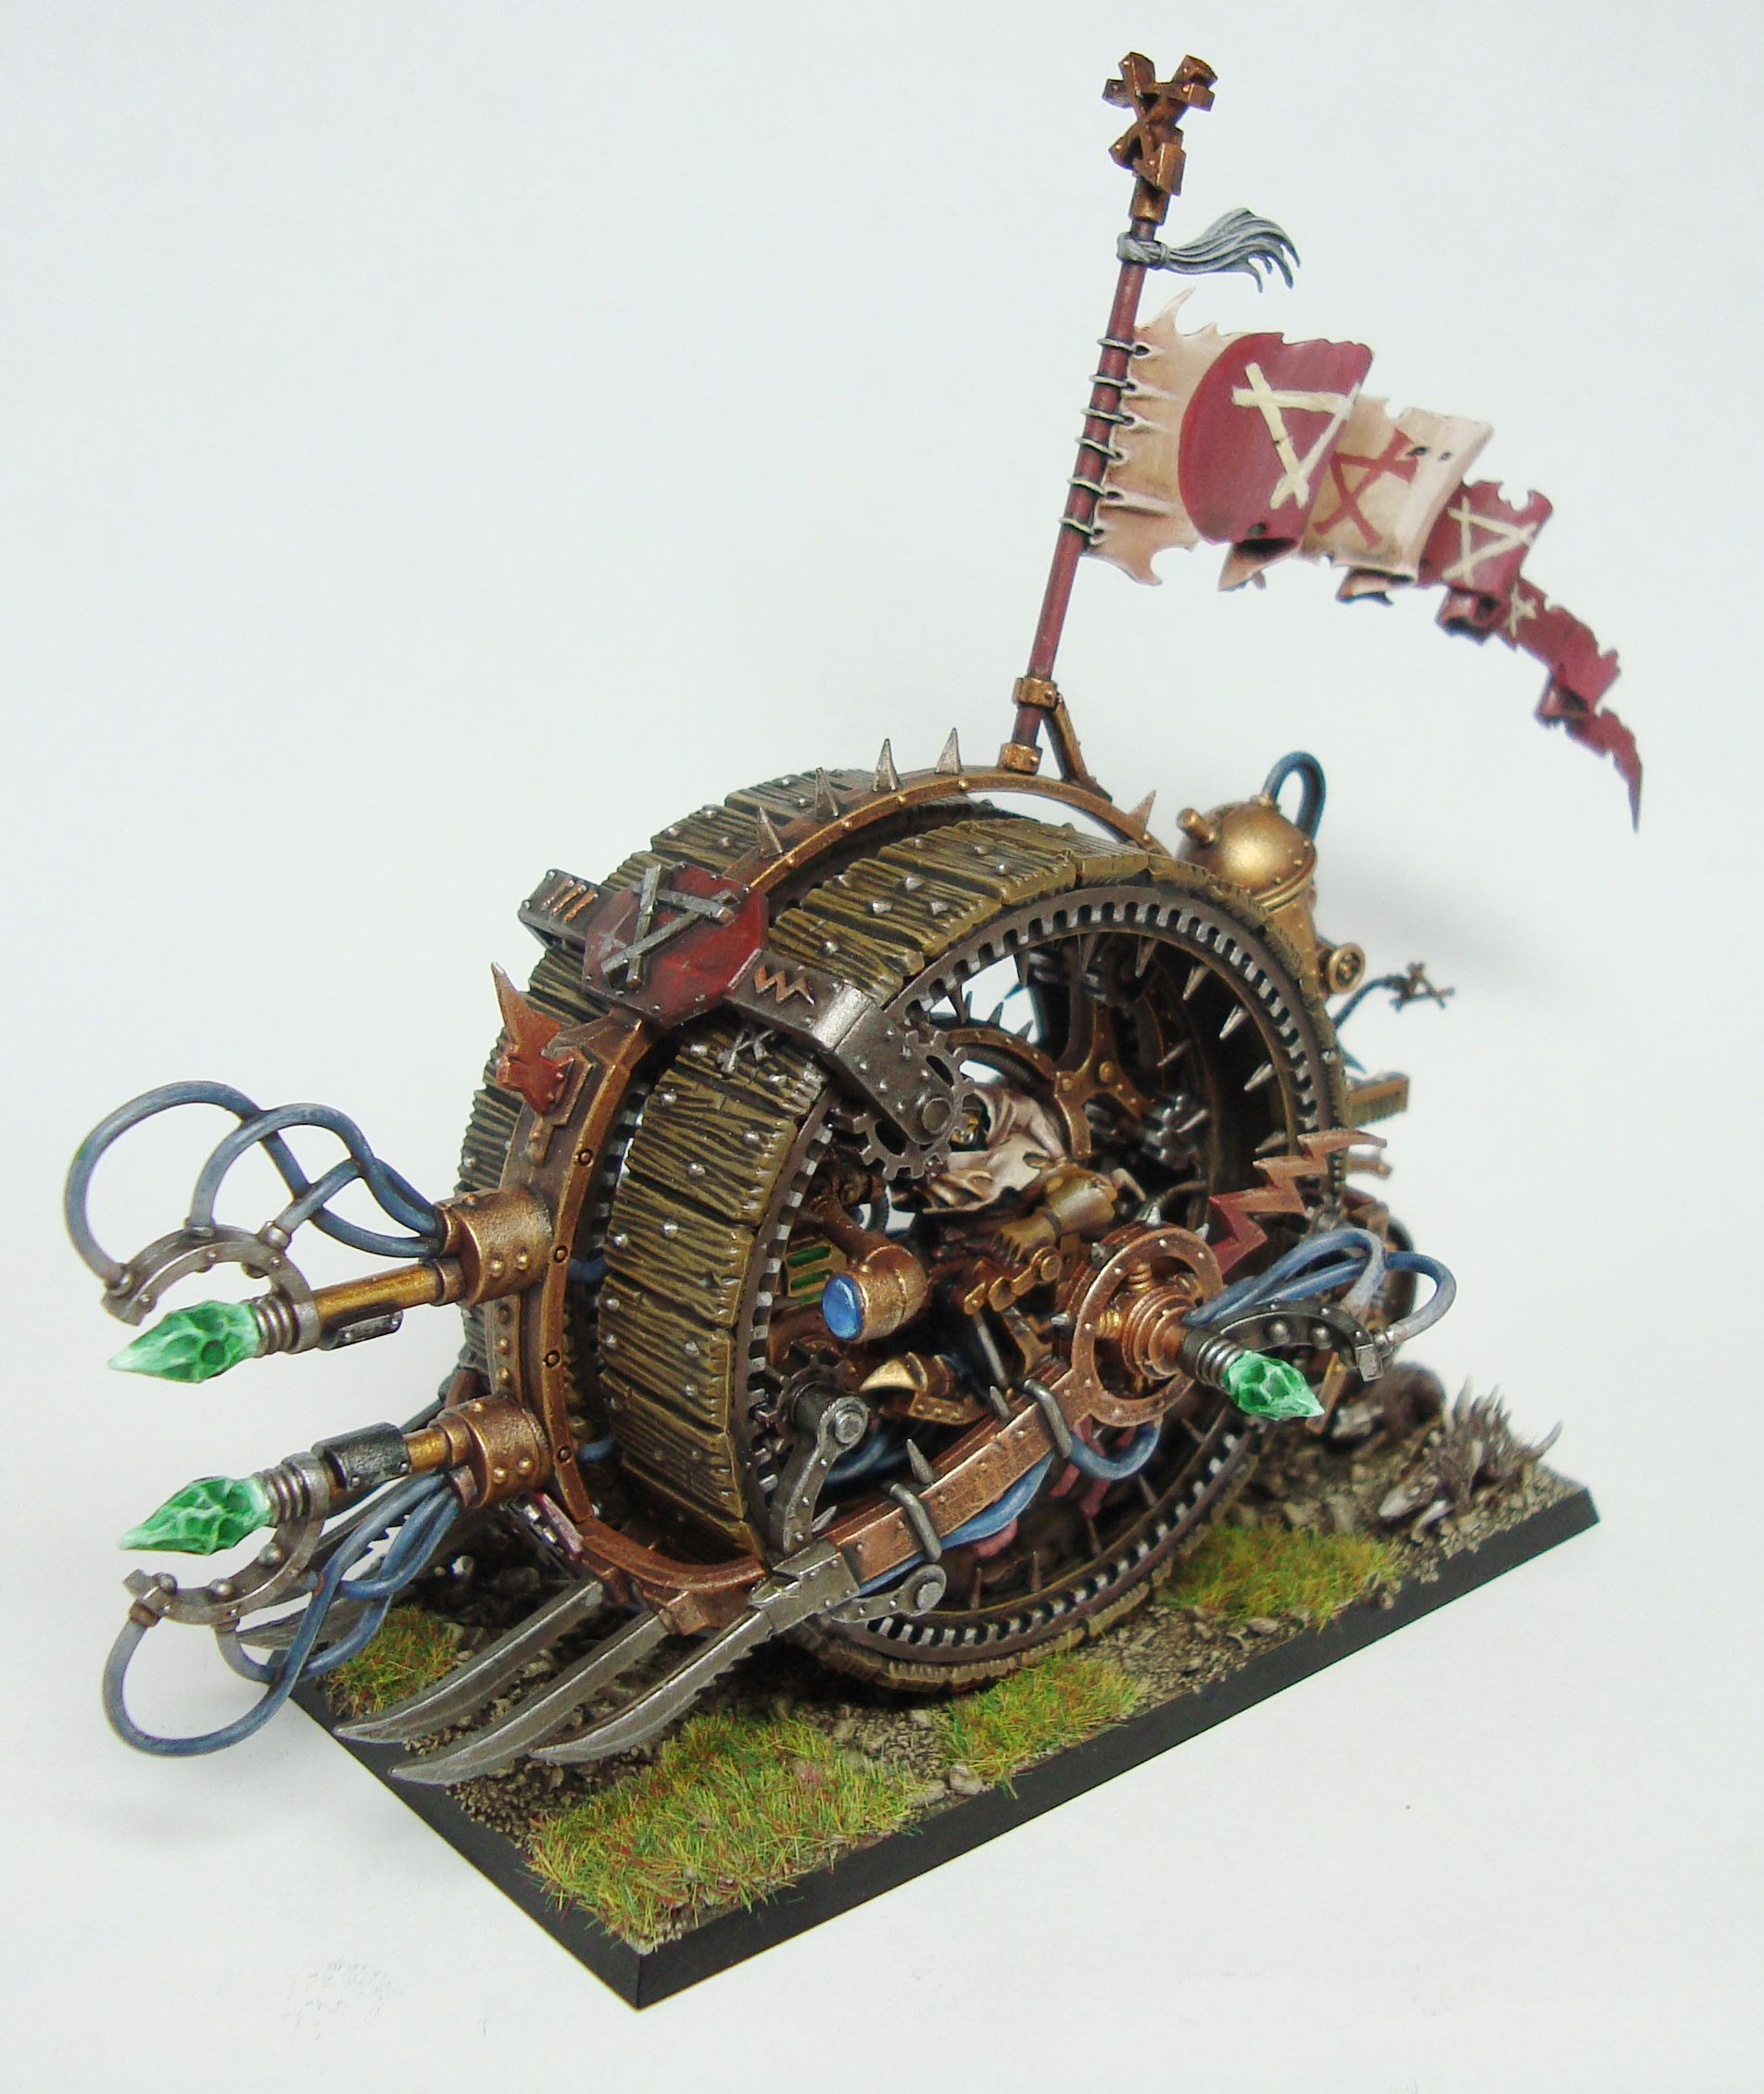 skaven | Miniatures: Warhammer Fantasy and other fantasy minis | Warhammer figures, Miniatures ...